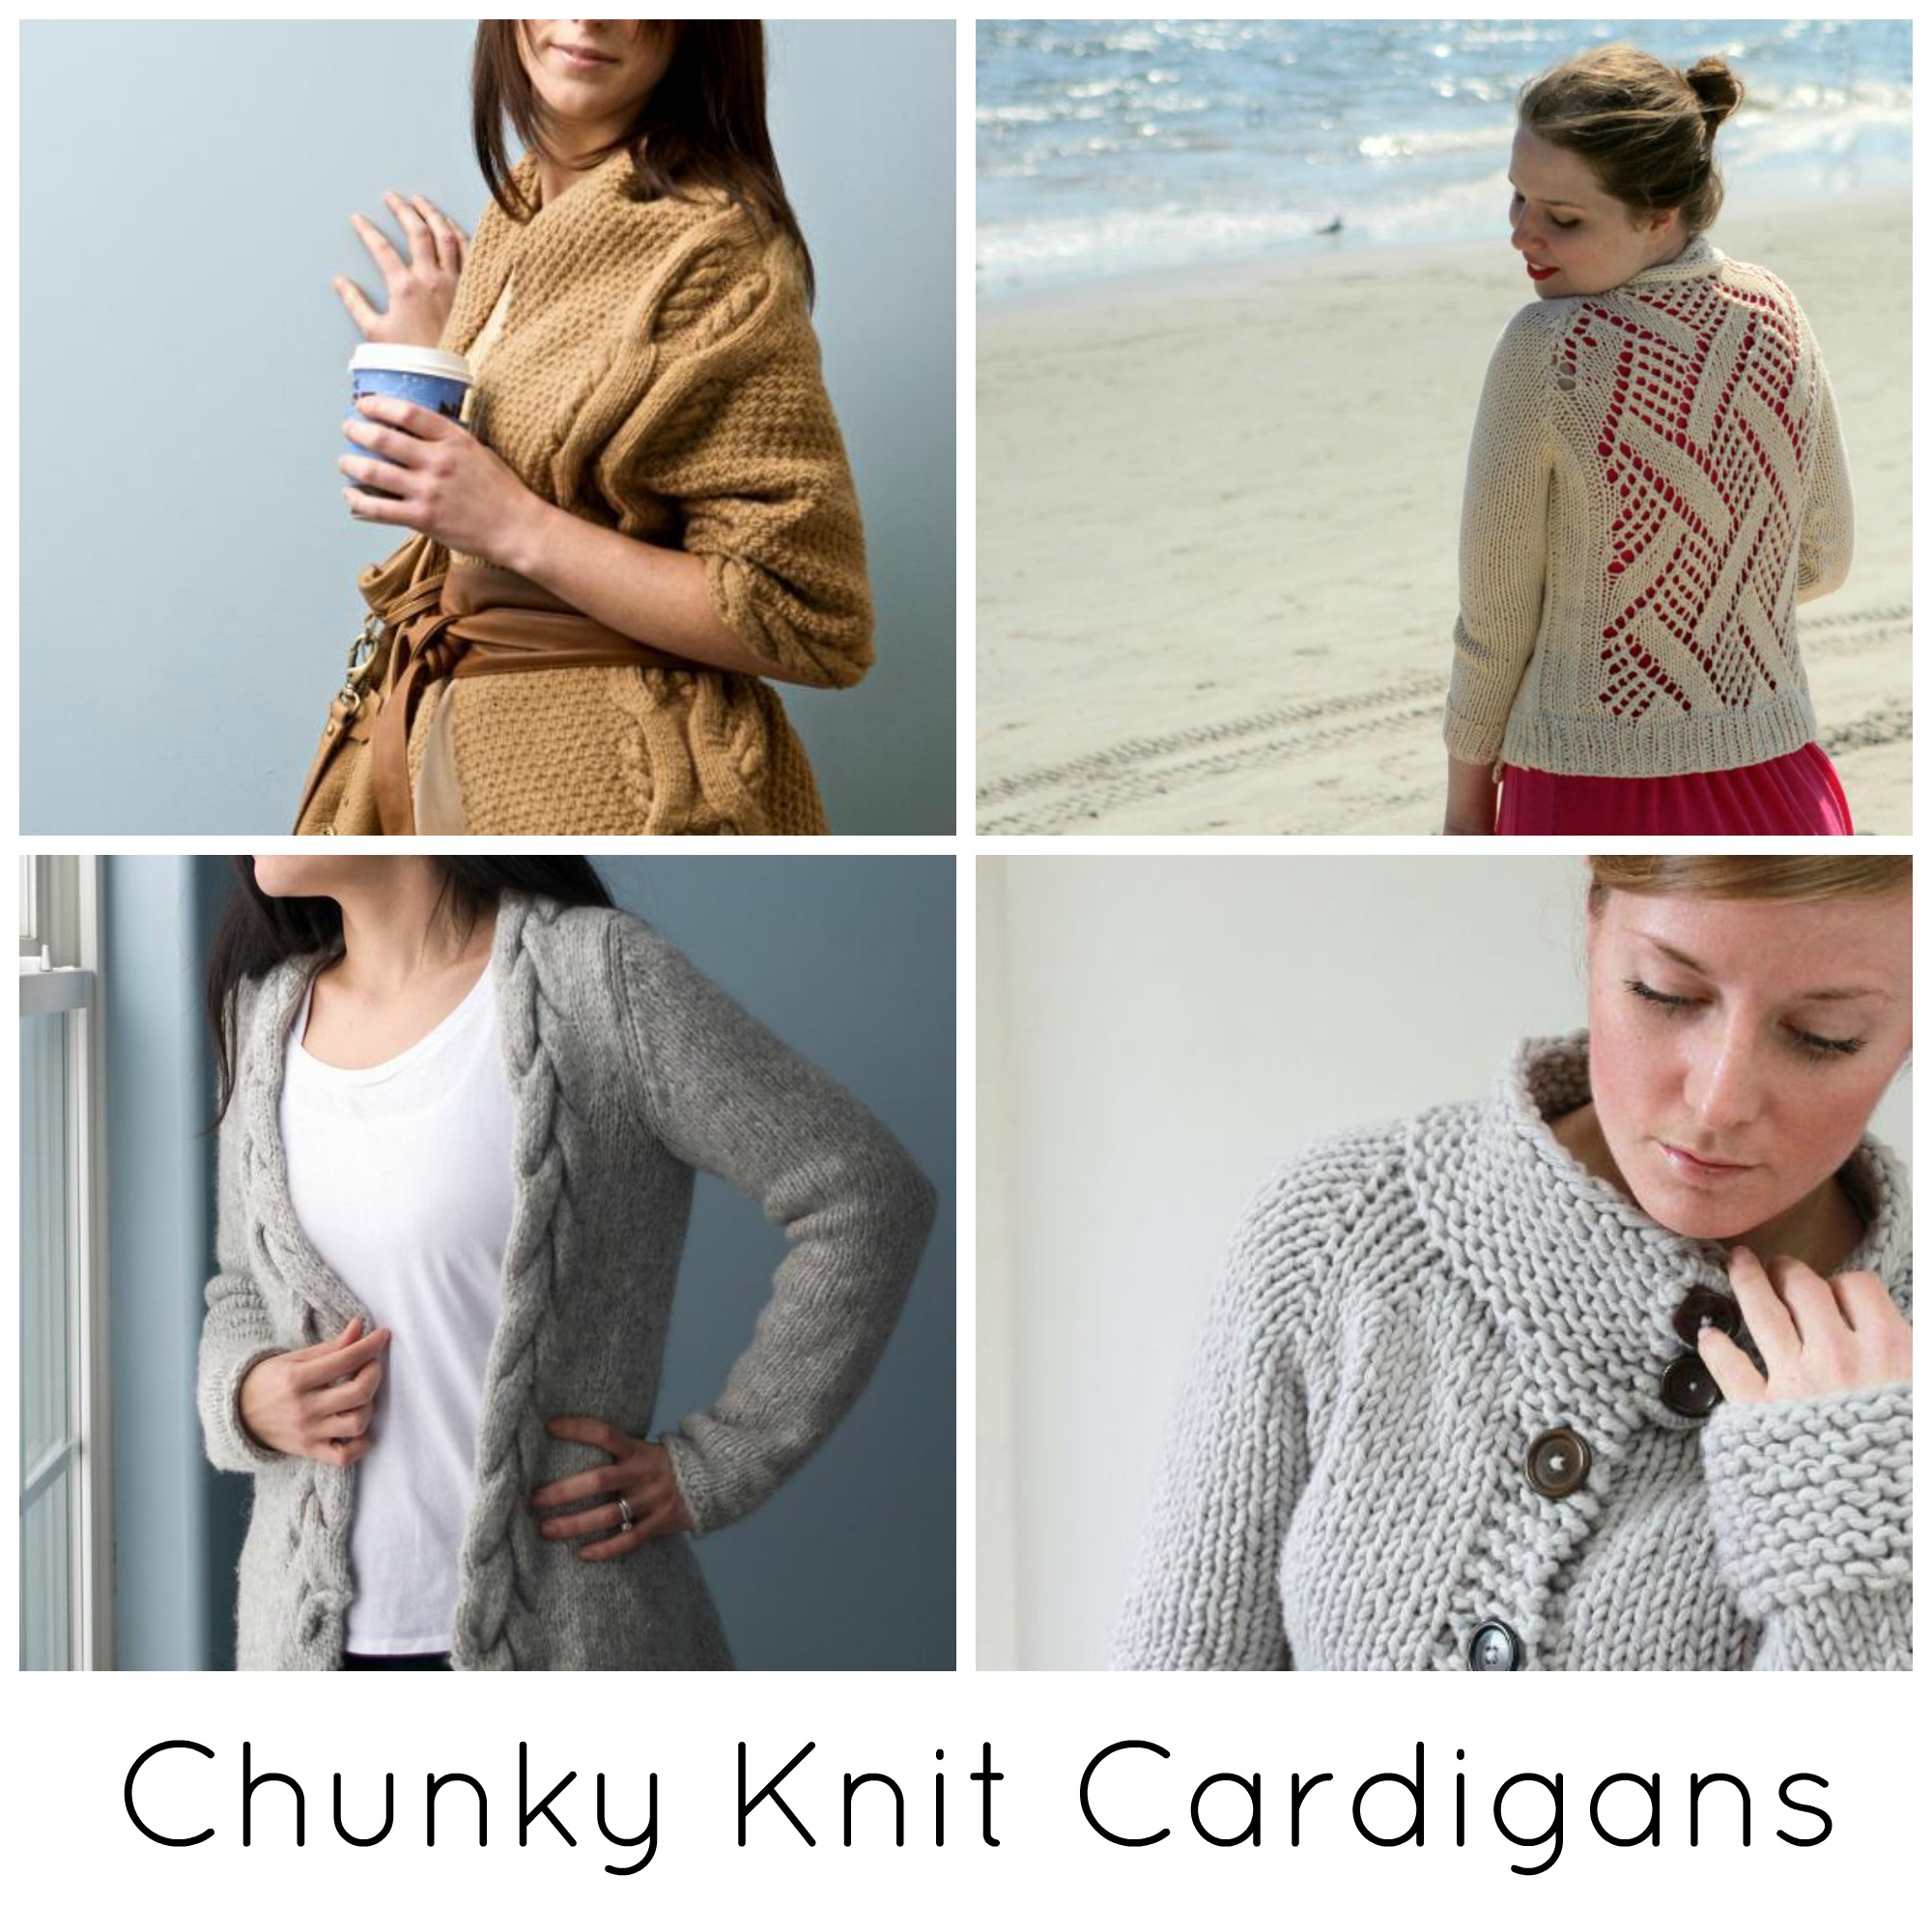 Knit Jumper Pattern The Coziest Chunky Knit Cardigan Patterns Ever